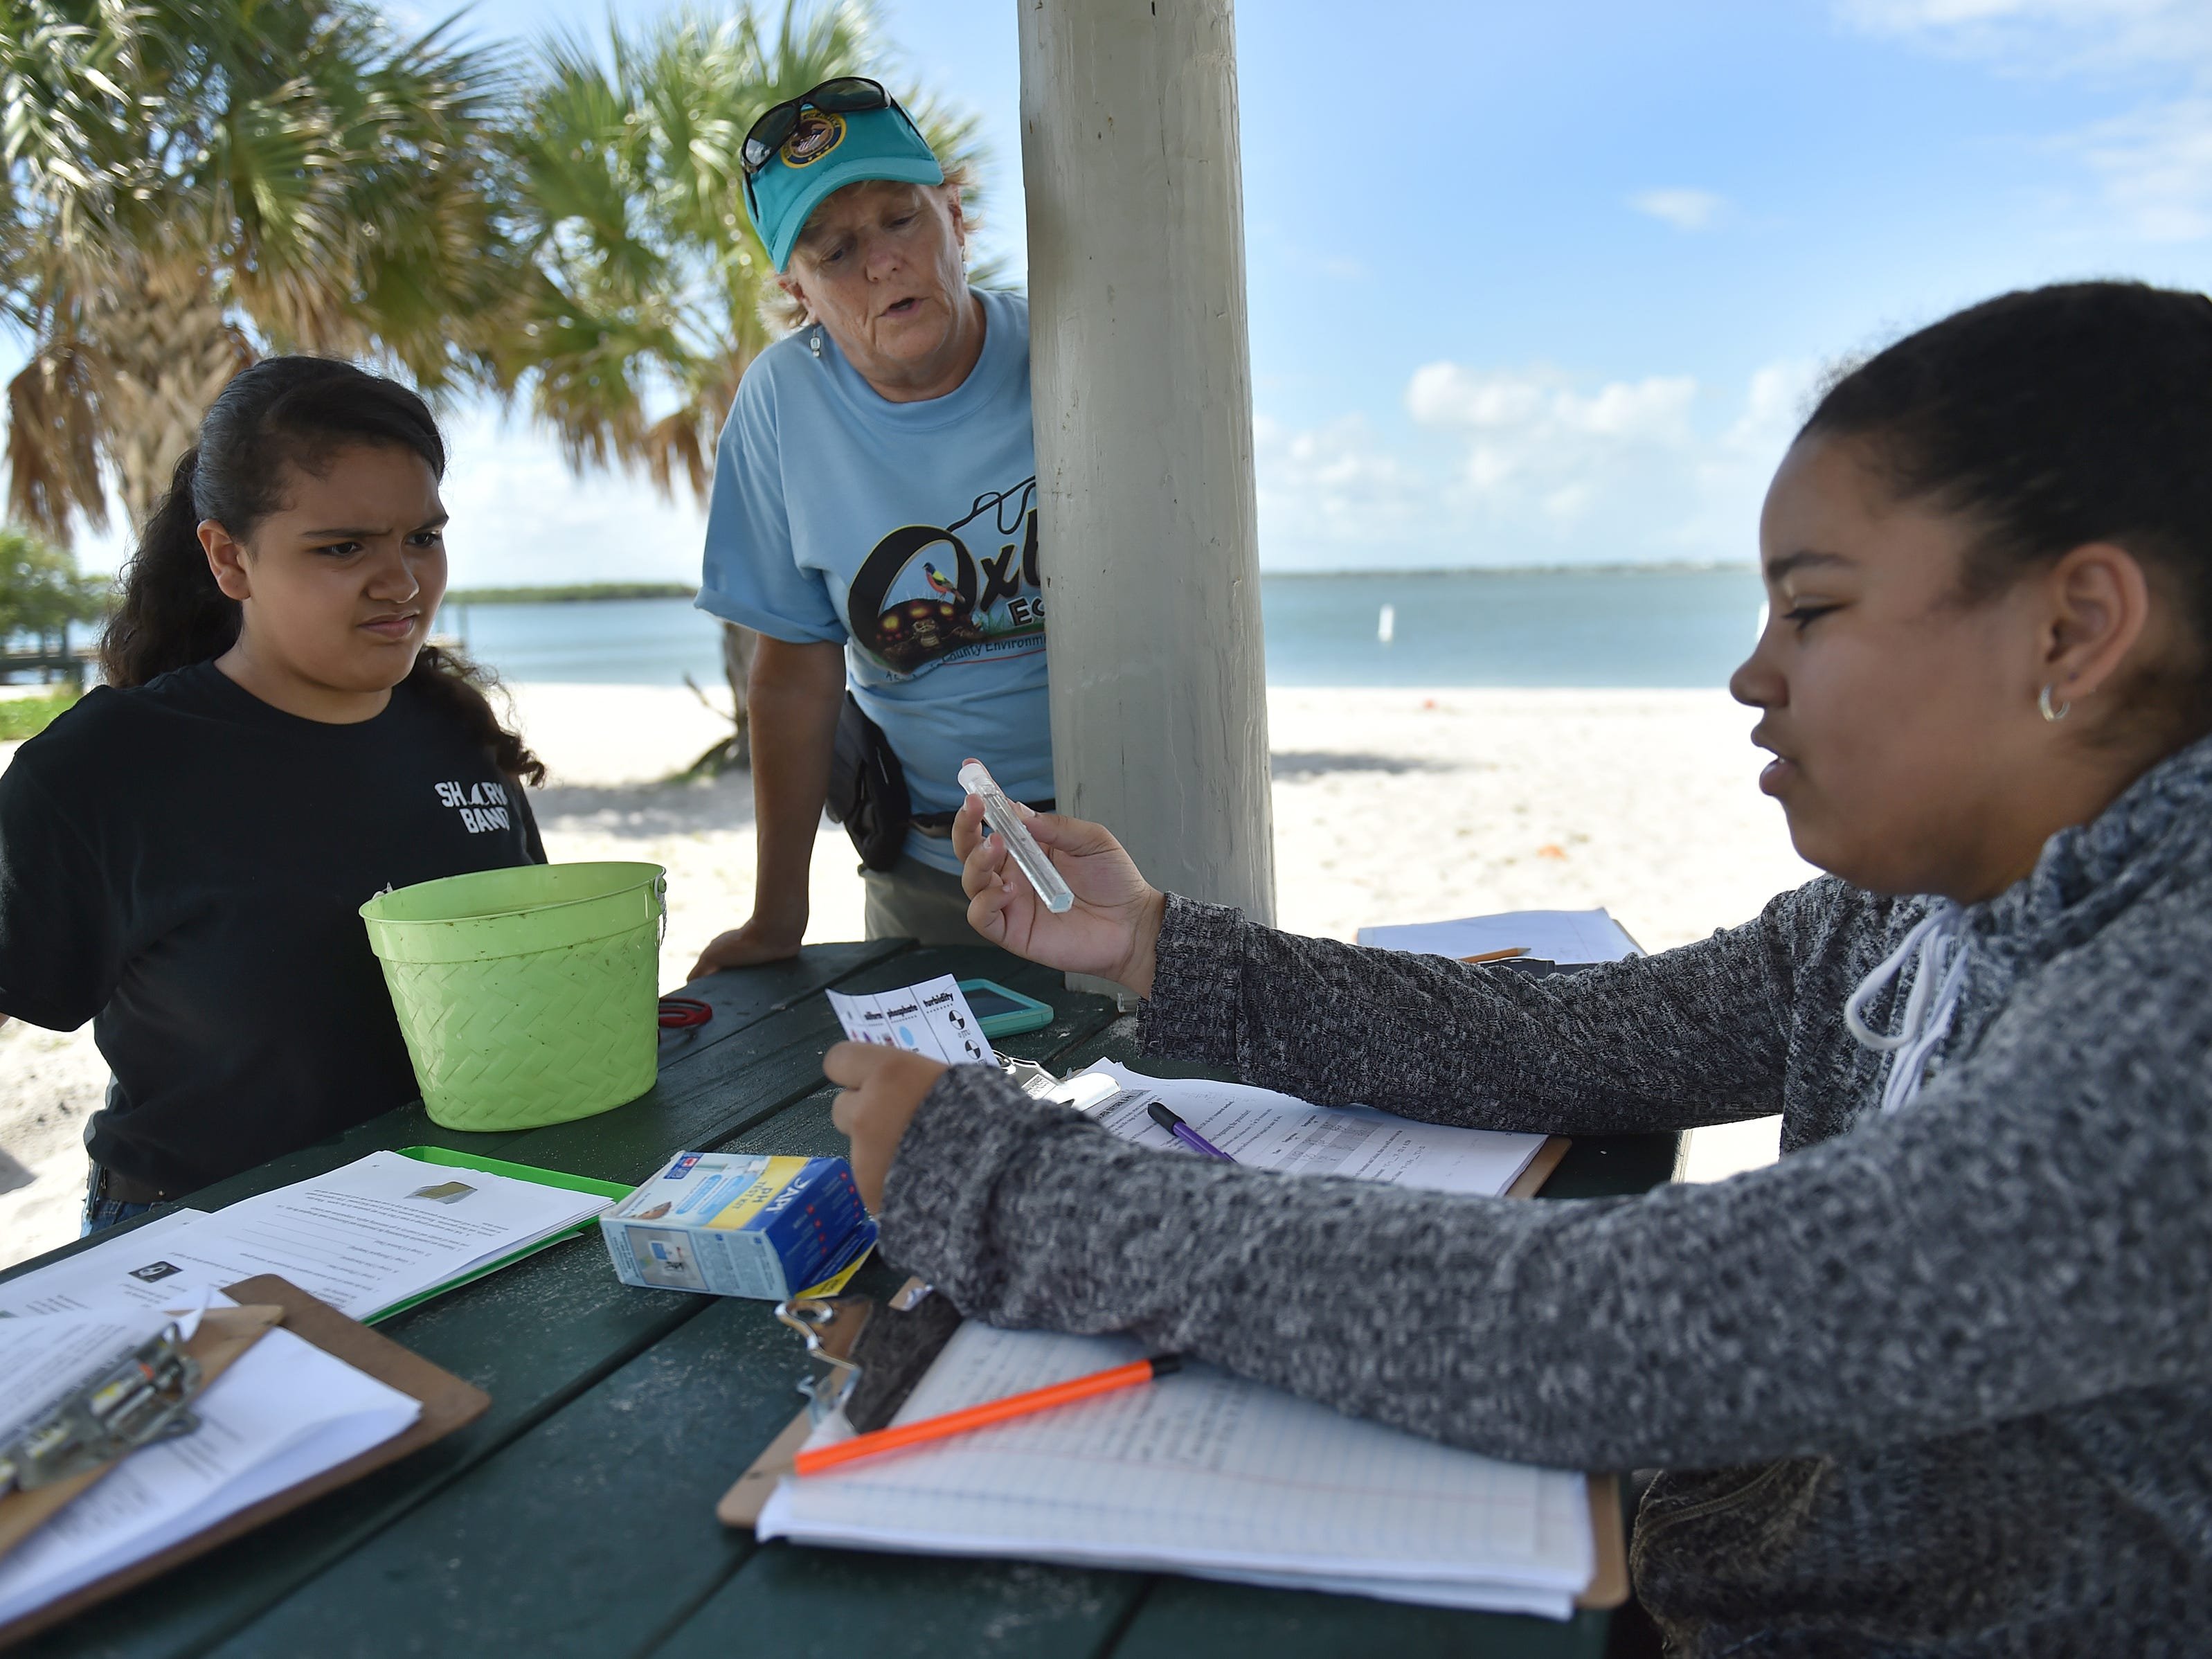 "Sixteen students from St. Lucie West K-8 school, along with their environmental partner, Oxbow Eco-Center, were participating in the ""A Day in the Life of the Indian River Lagoon"", a community-based citizen science and experimental research program to have students, teachers, and environmental experts collaborate in collecting water samples and biological inventories along the Indian River Lagoon. Students and teachers paired with natural resource organizations from Volusia County south through Palm Beach County, testing the health of the entire length of the lagoon."